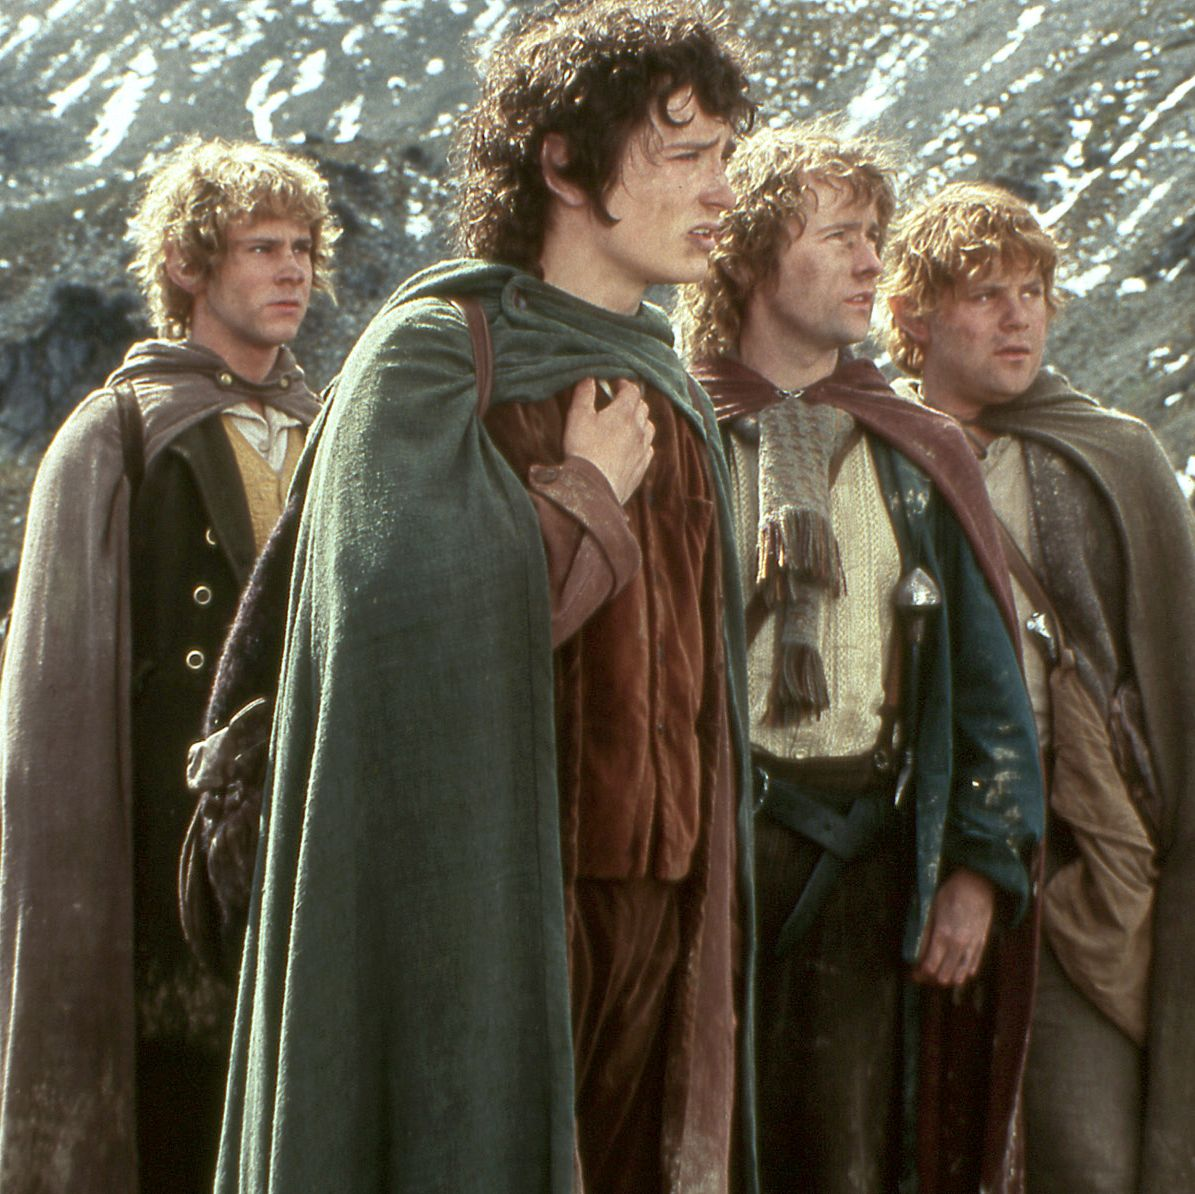 New Lord of the Rings series unveils first teaser by inviting fans to explore Middle-earth